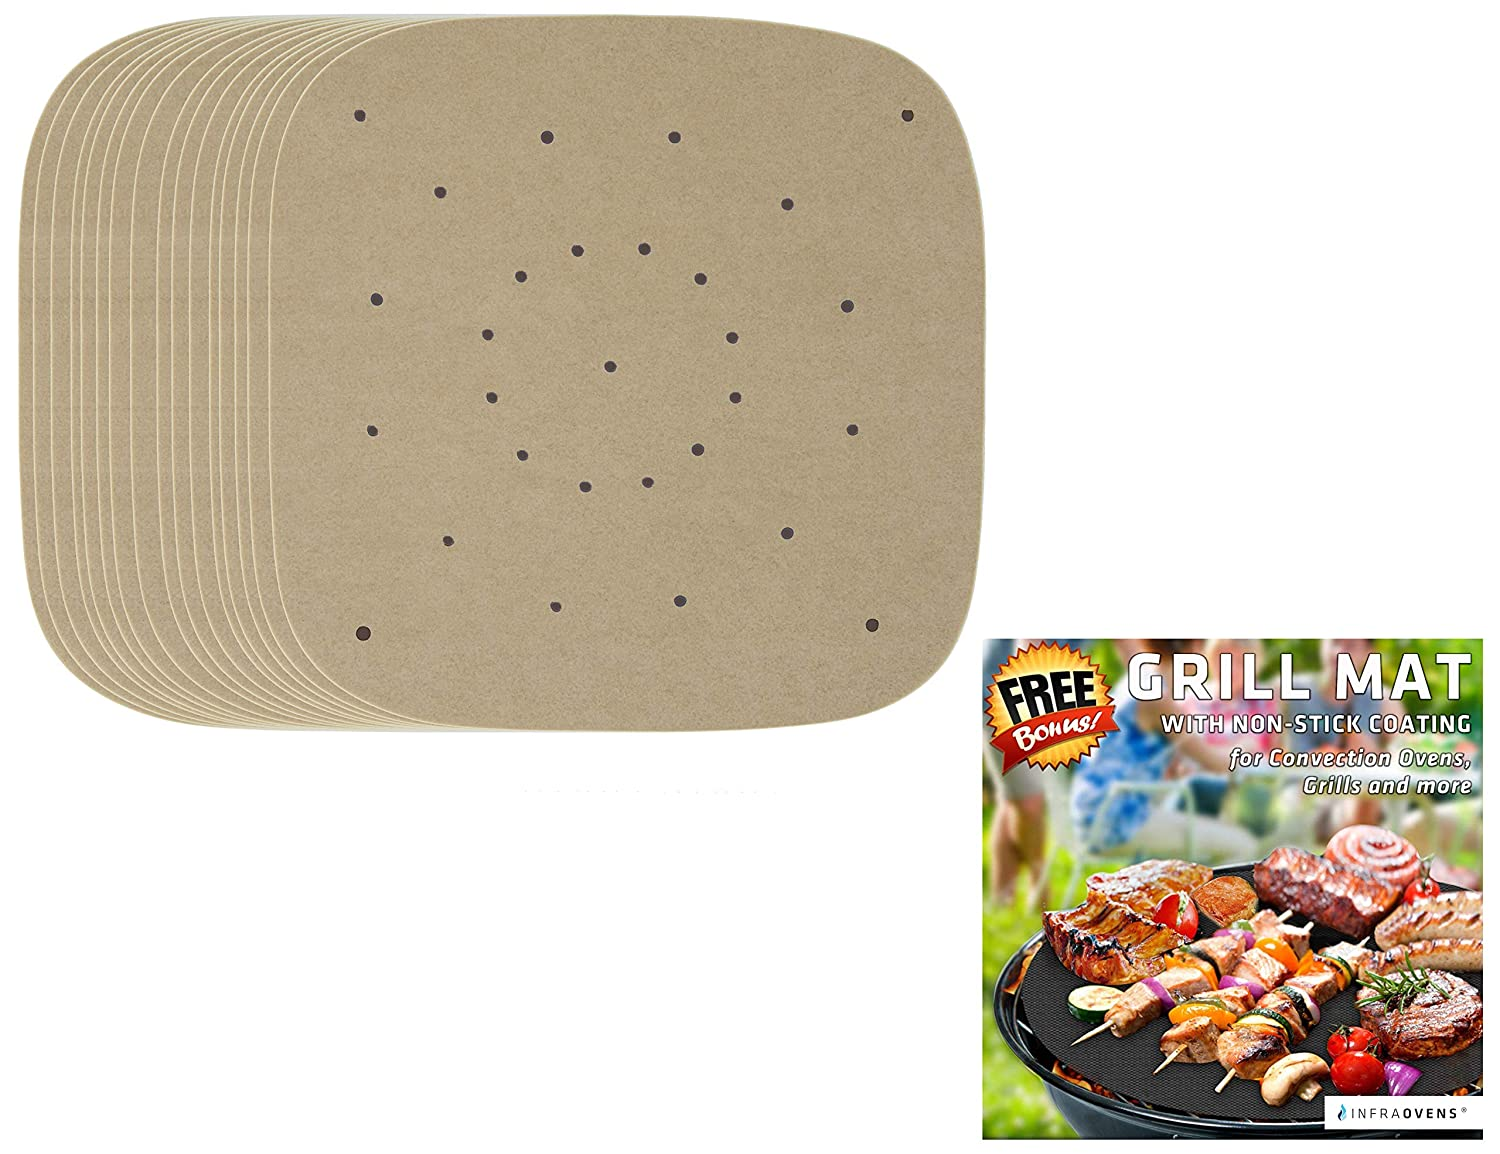 100pcs Square Air Fryer Parchment Paper Sheets for baking + Non-Stick Grill Mat Compatible with Chefman, Chef di Cucina, Maxi Matic | Steam Paper Liner by Infraovens (Large to XL)